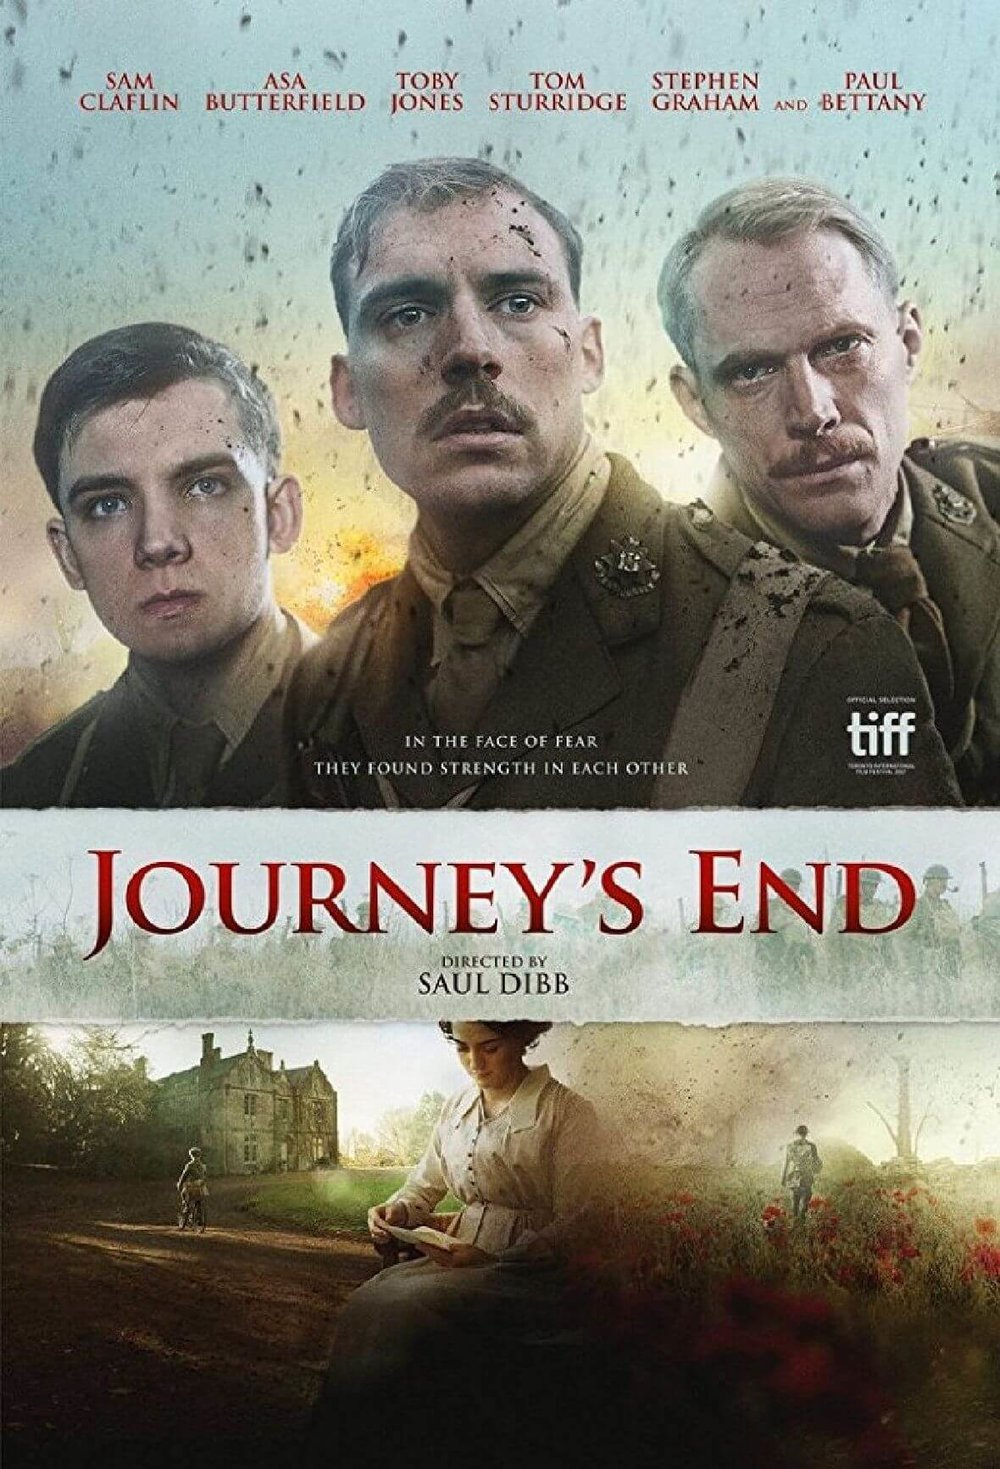 Cover image for the film, Journey's End